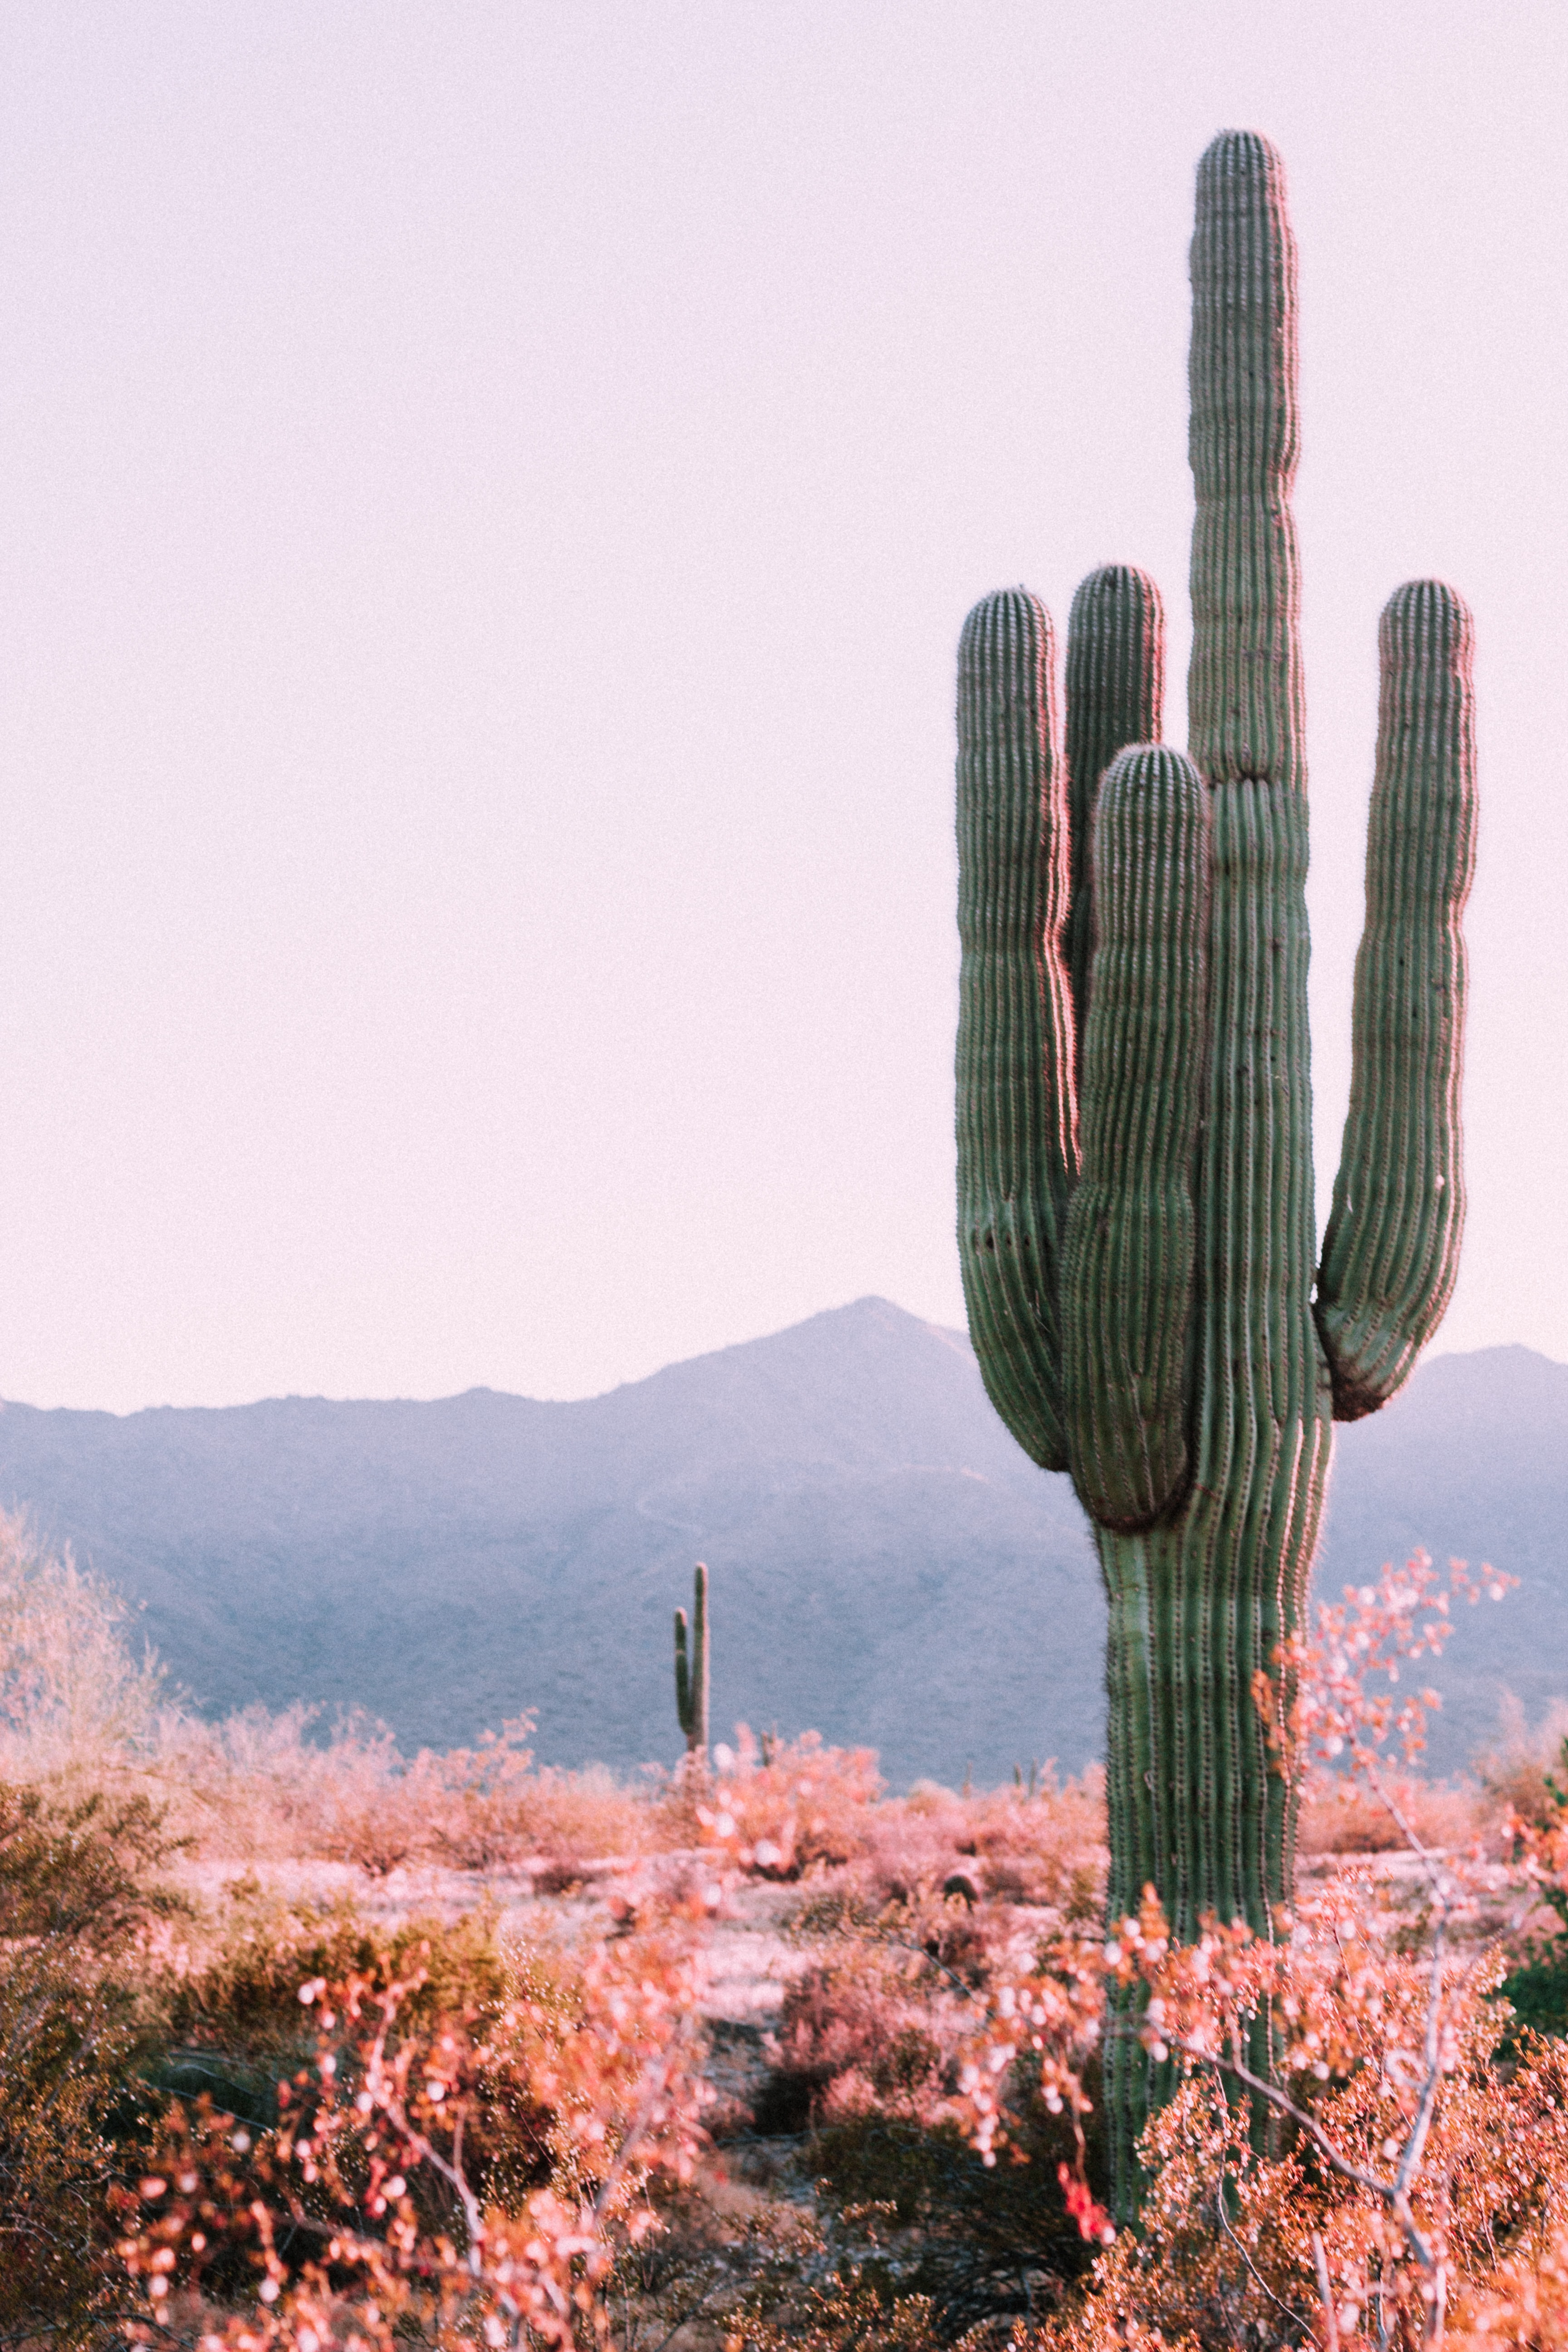 Cactus Pictures Download Free Images On Unsplash